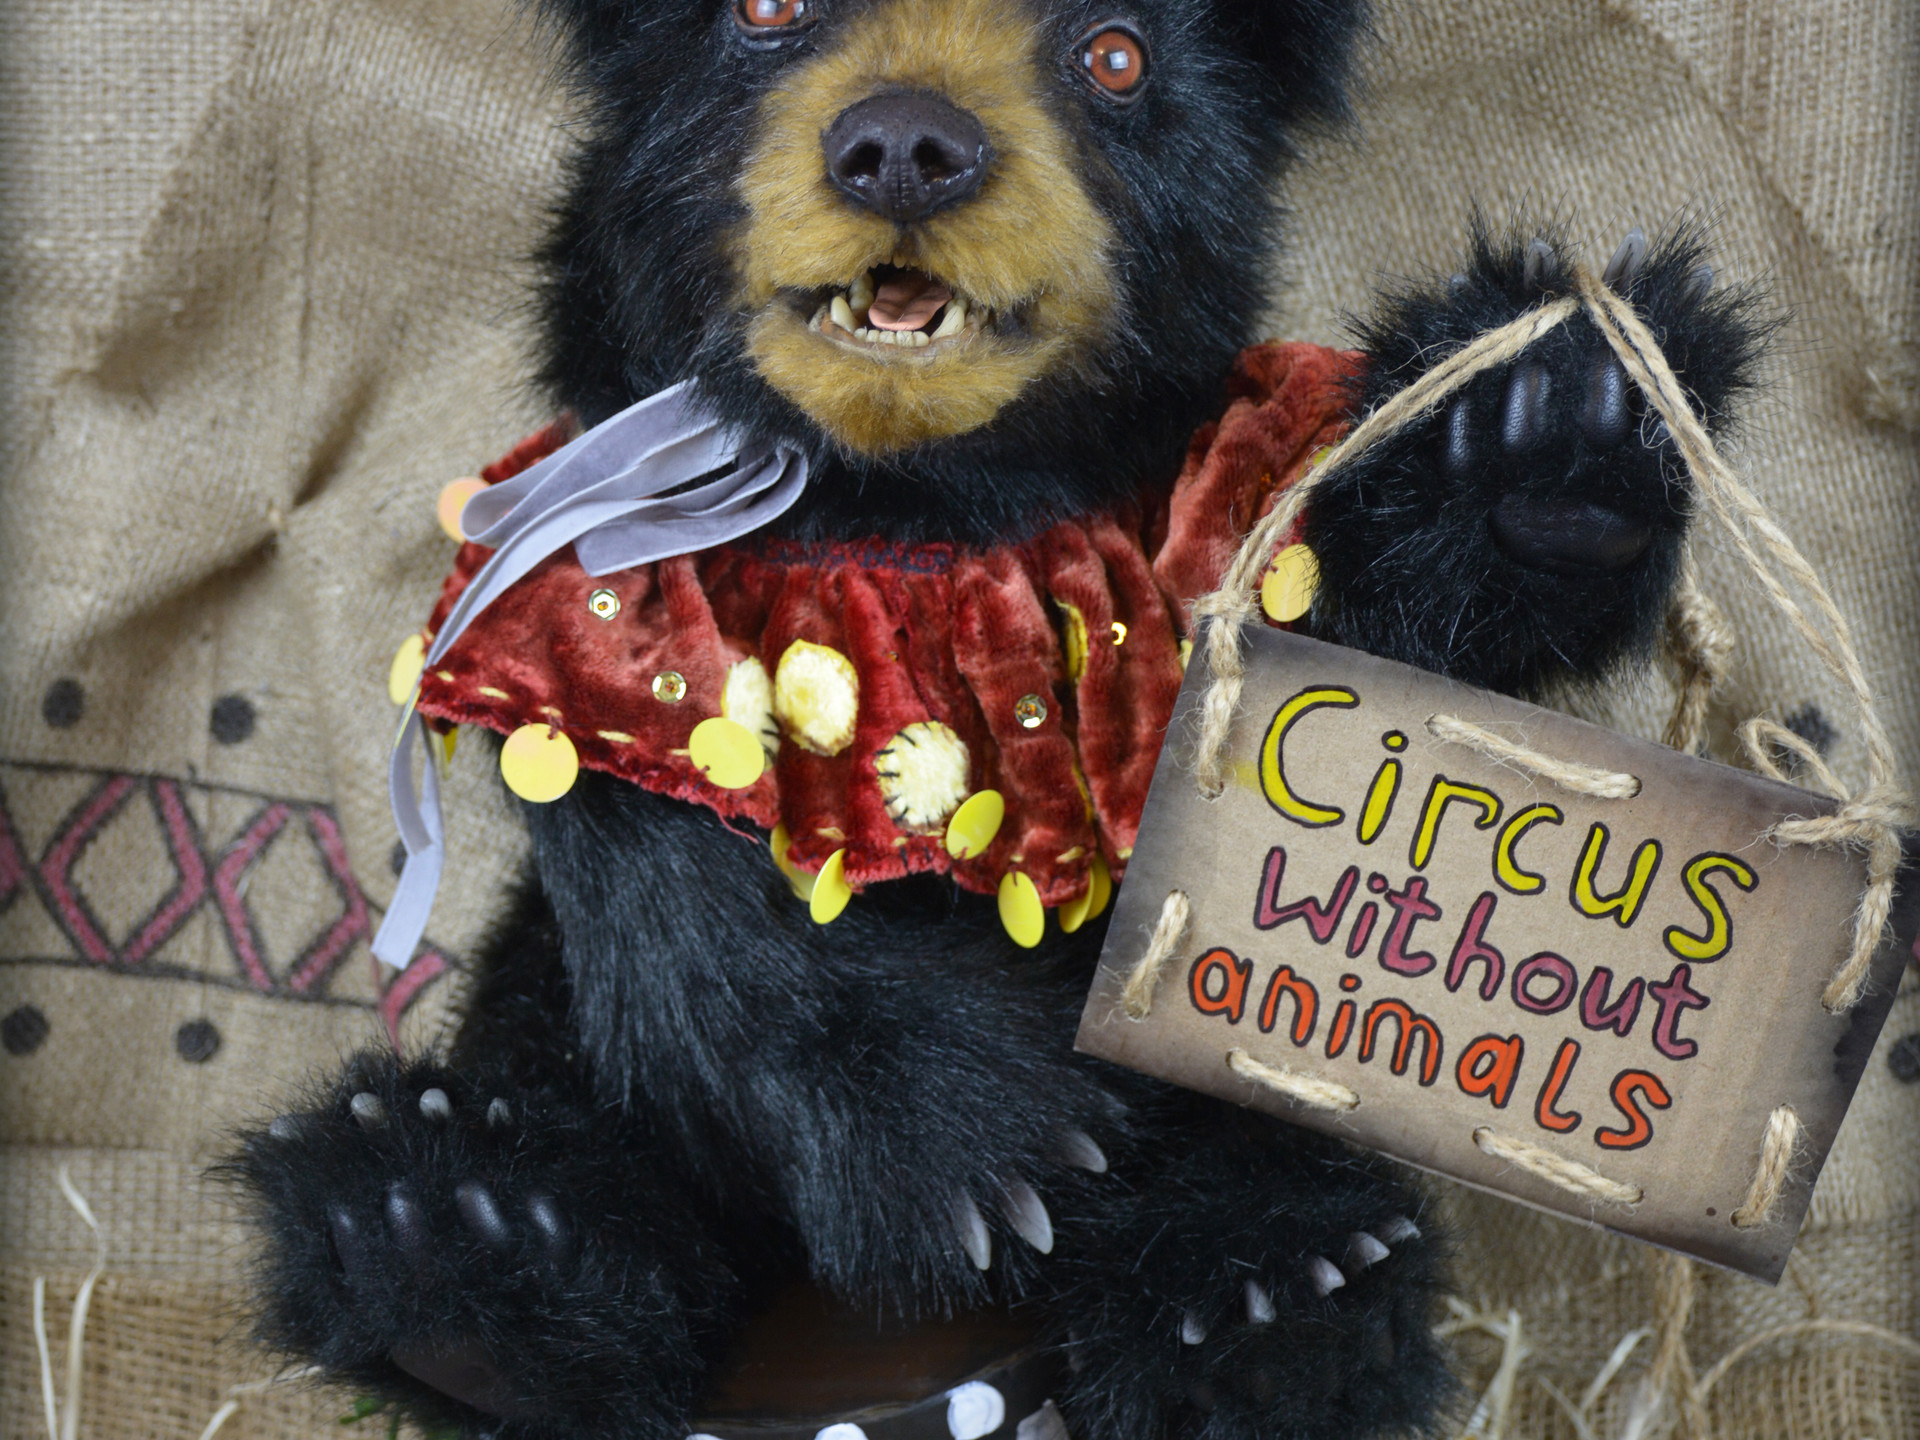 Clown, black bear, bear, circus without animals, animals not clowns, animal protection, baribal